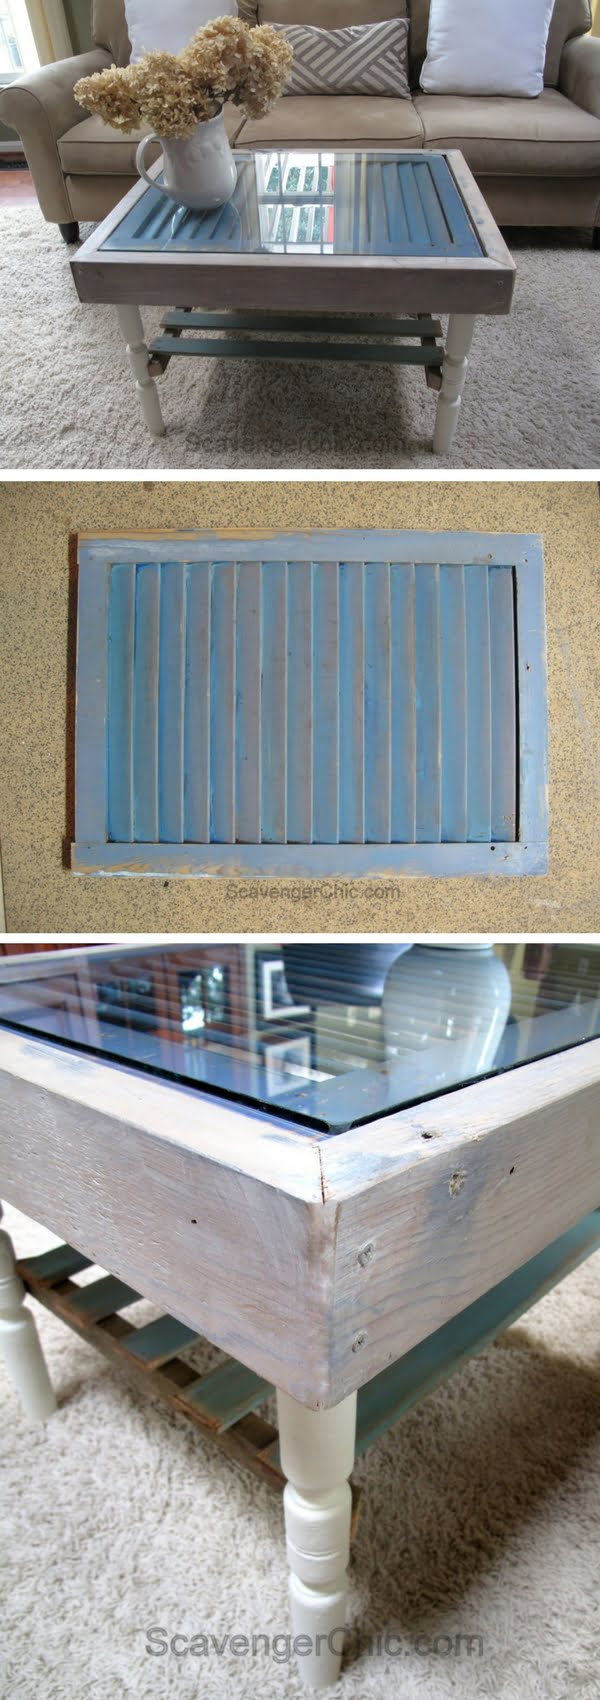 How to build a DIY coffee table from old shutters